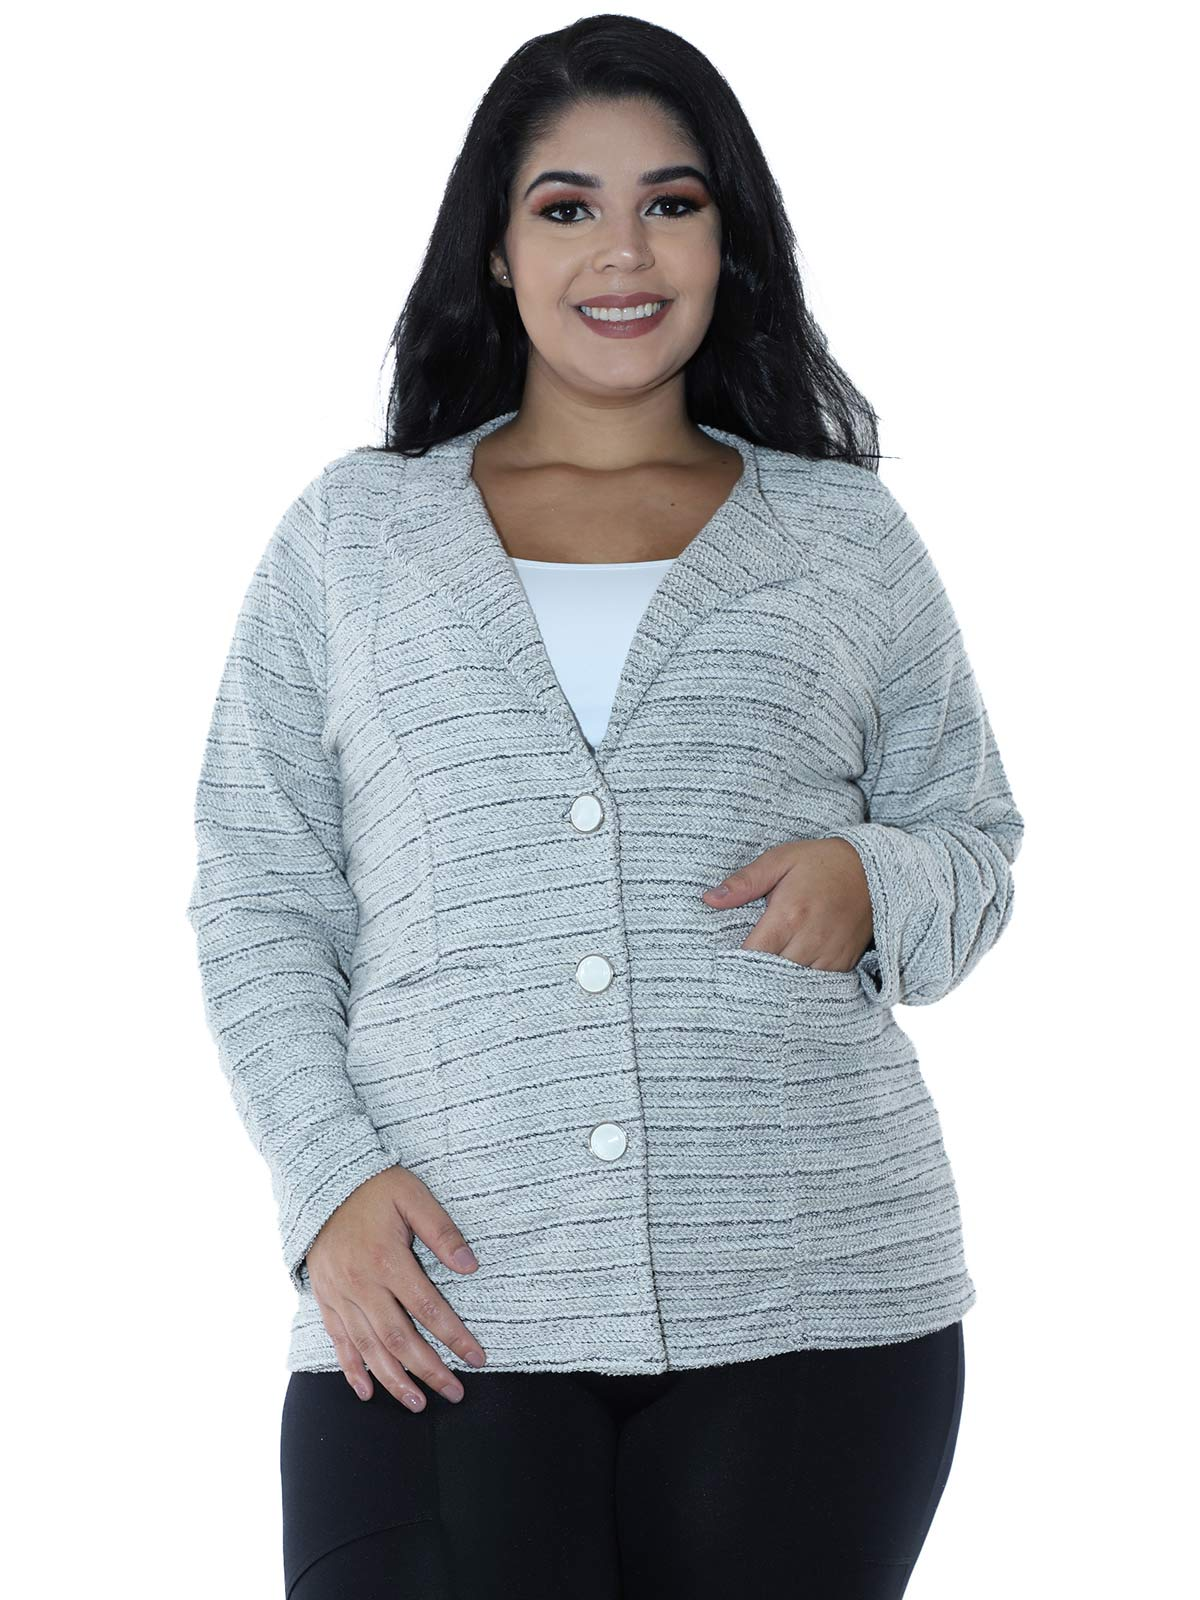 Casaco Plus Size Fleece Tricot Colors Preto